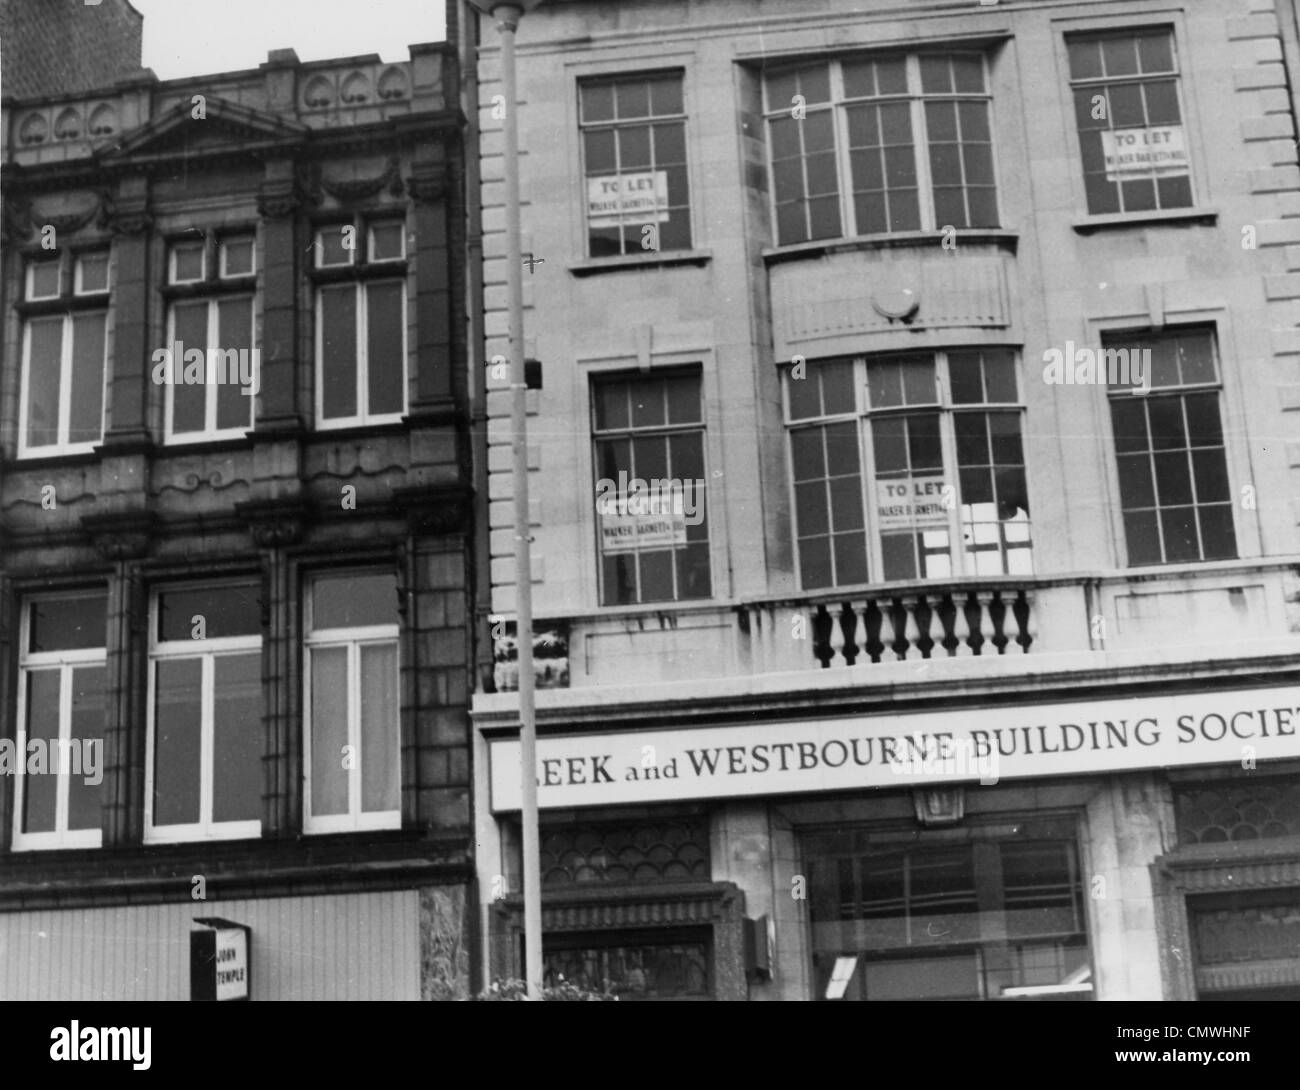 Leek and Westbourne Building Society, Queen Square, Wolverhampton, circa 1991. The premises of the Leek and Westbourne - Stock Image